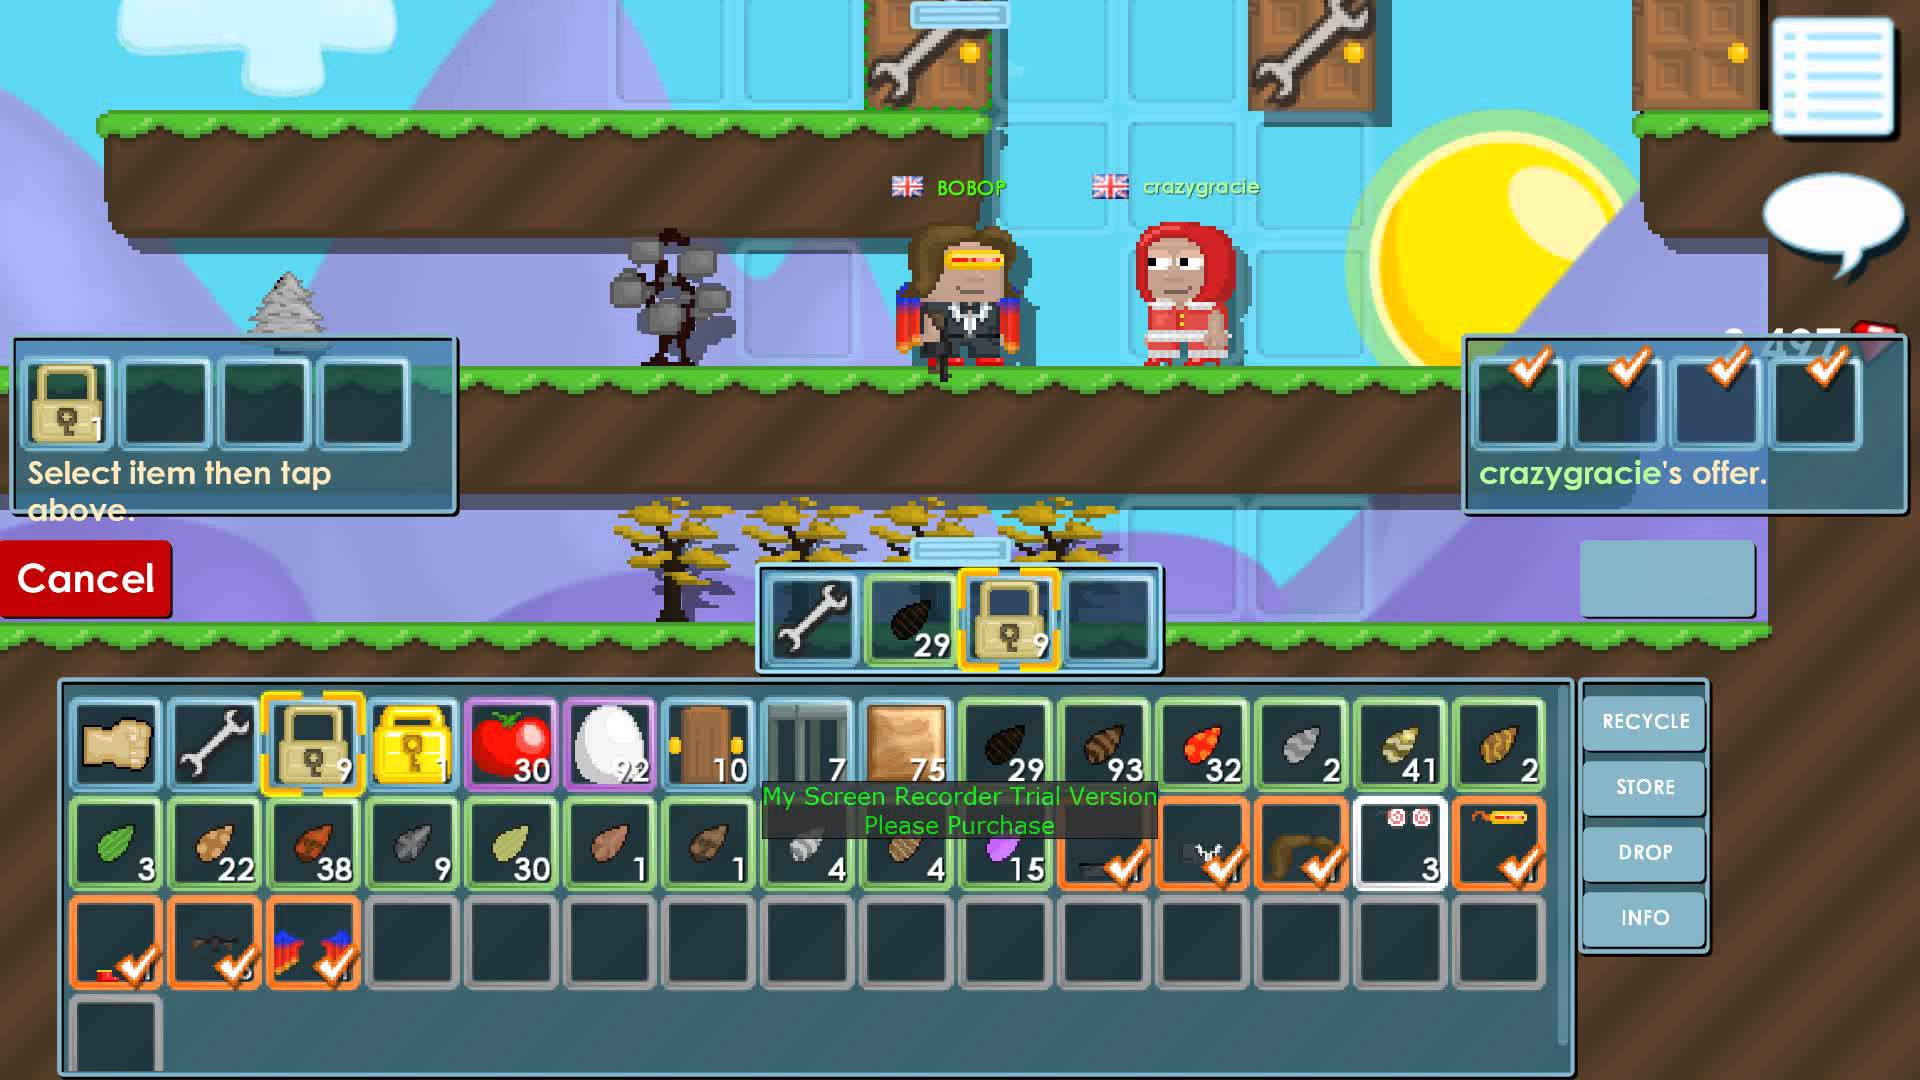 Download Growtopia v2 35 Mod Apk ( Unlimited gems) | AxeeTech